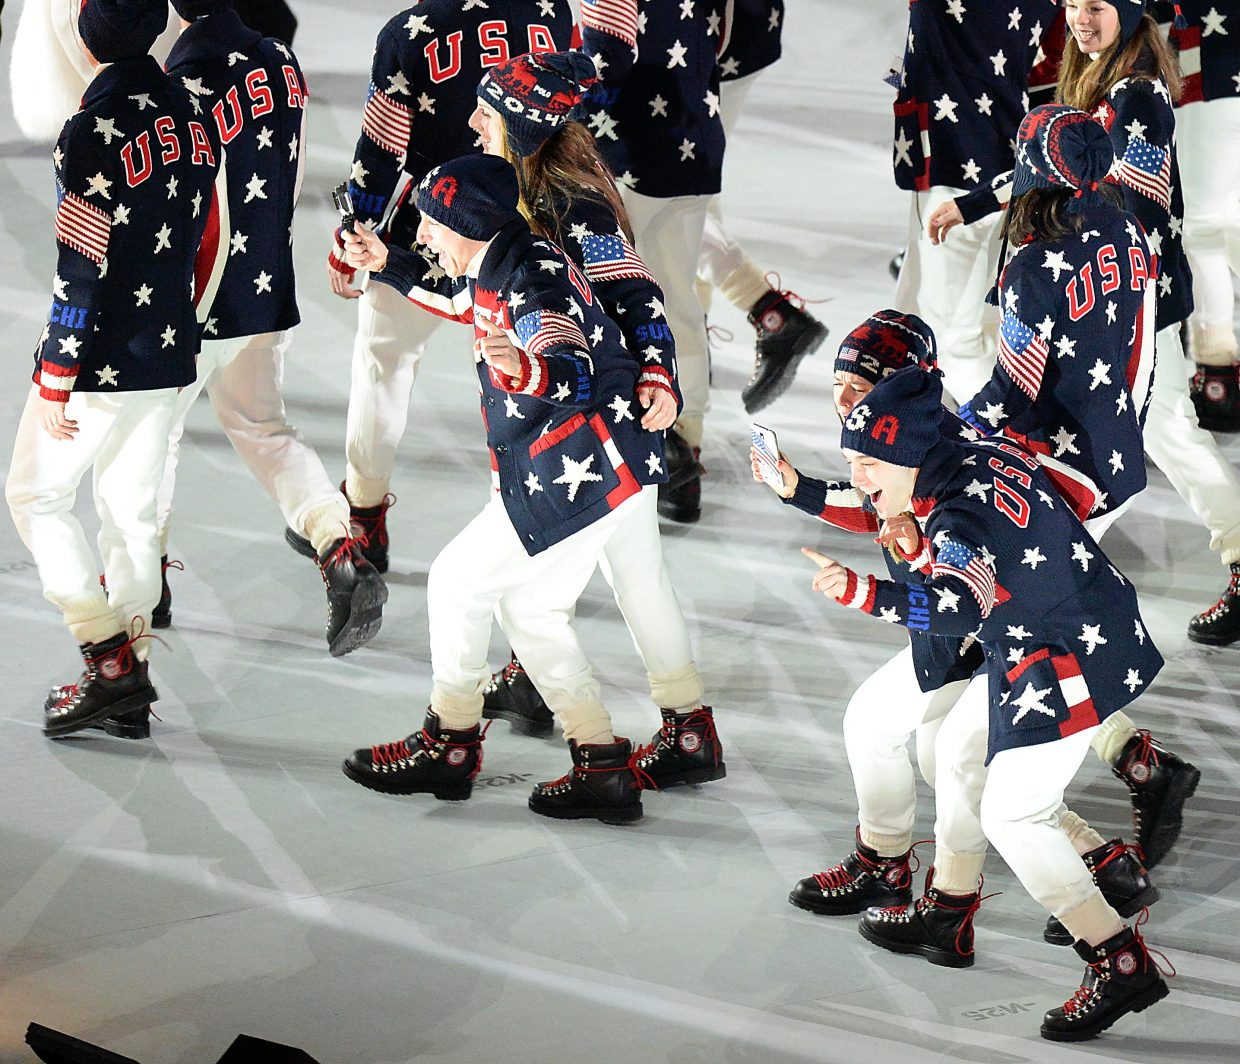 A group of American athletes mug for a camera Friday during the Winter Olympics opening ceremony in Sochi, Russia.